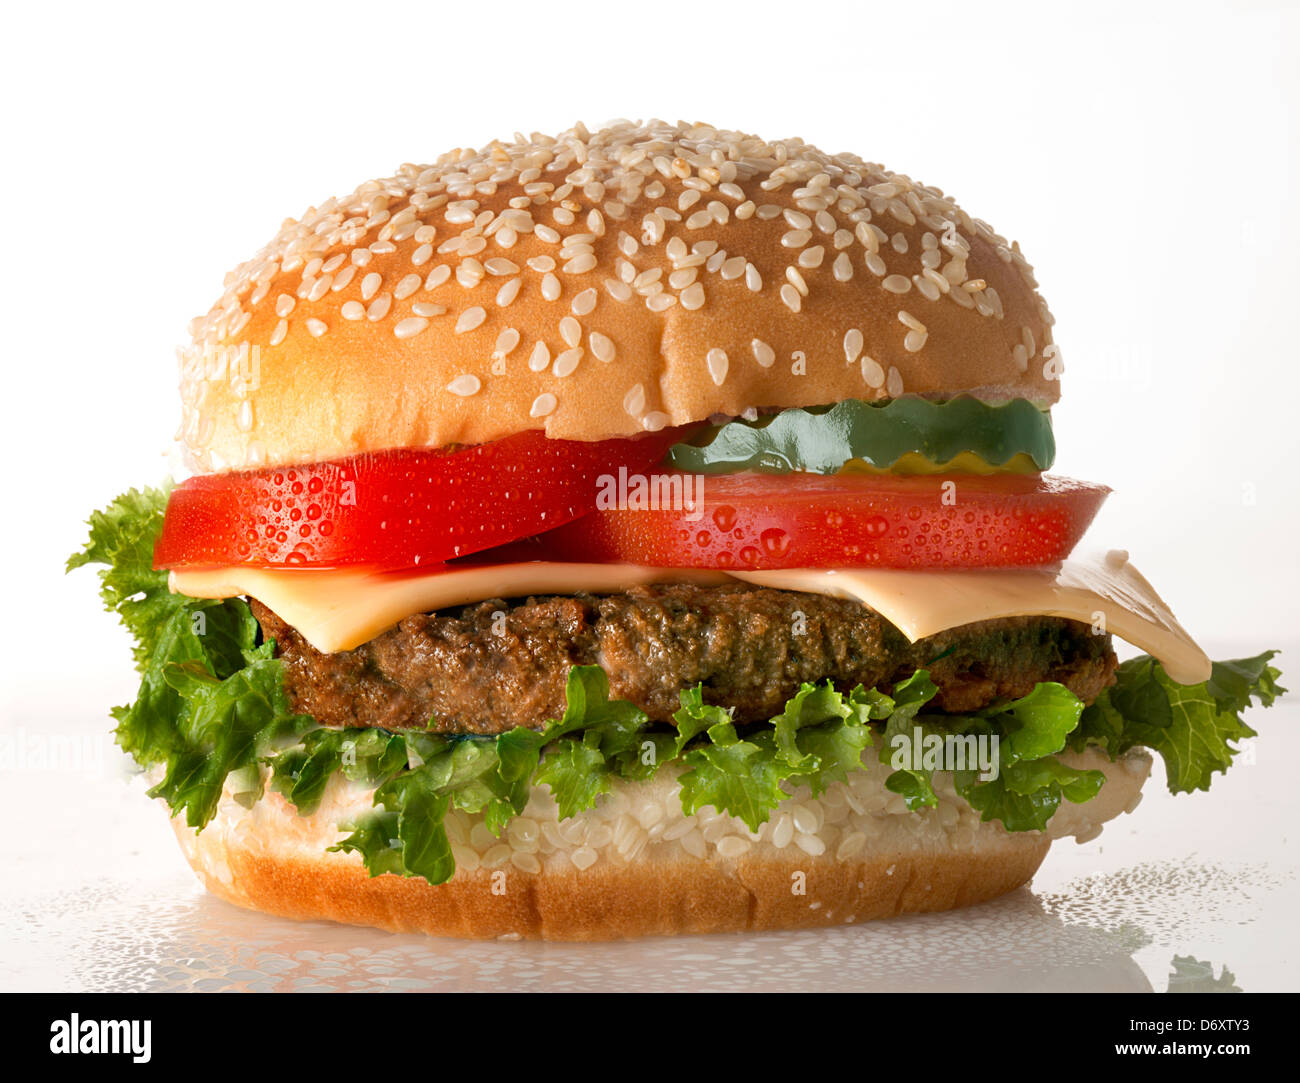 Cheeseburger mit Tomate Stockbild